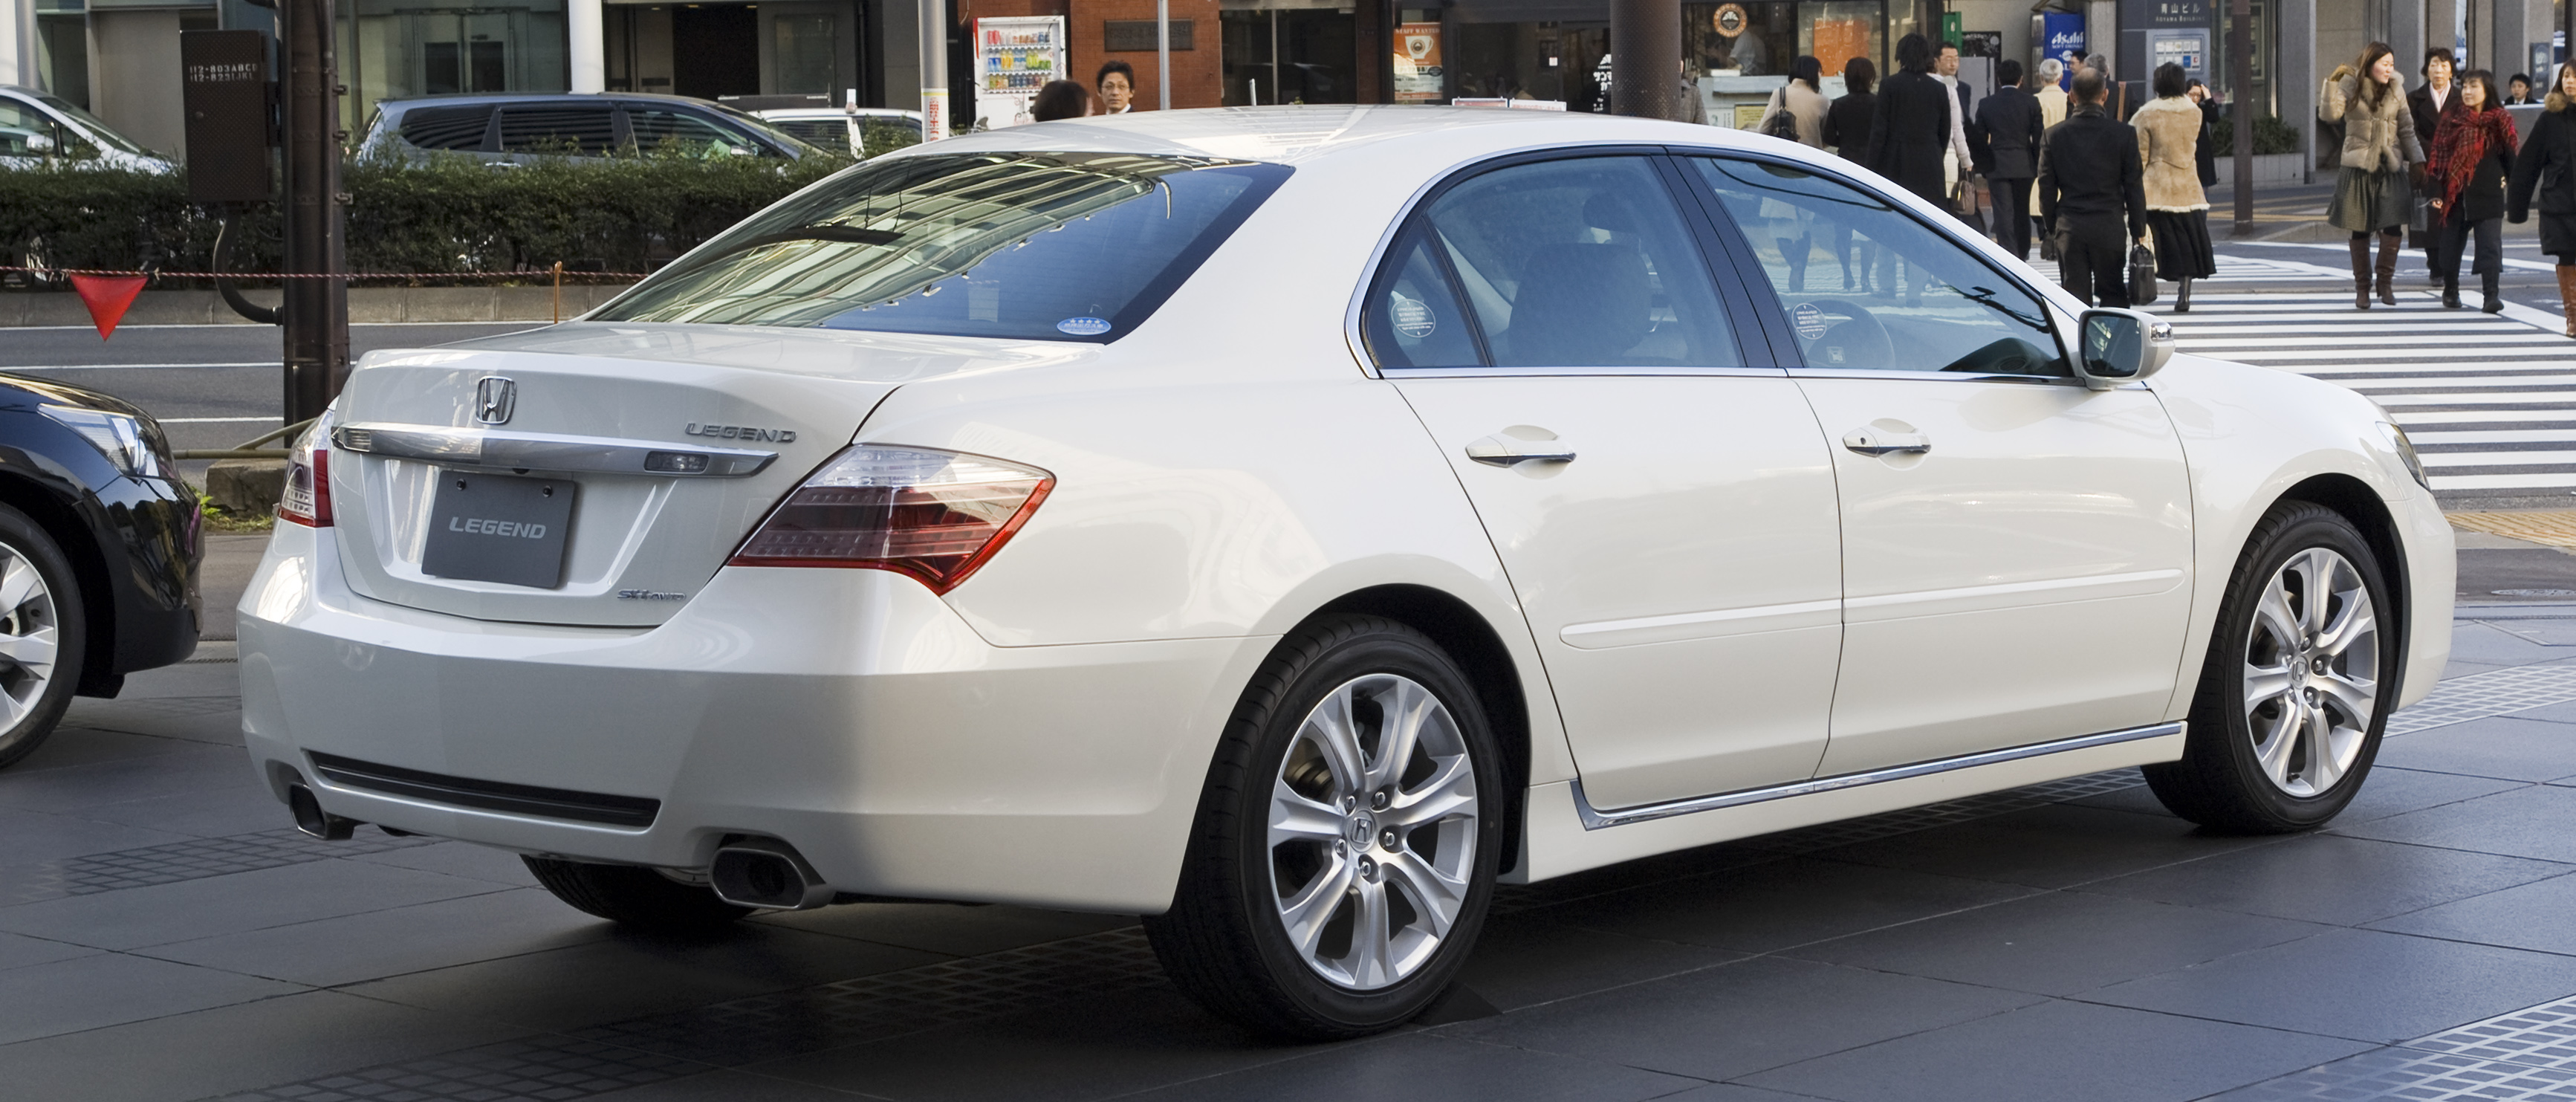 2008 Honda Legend #2